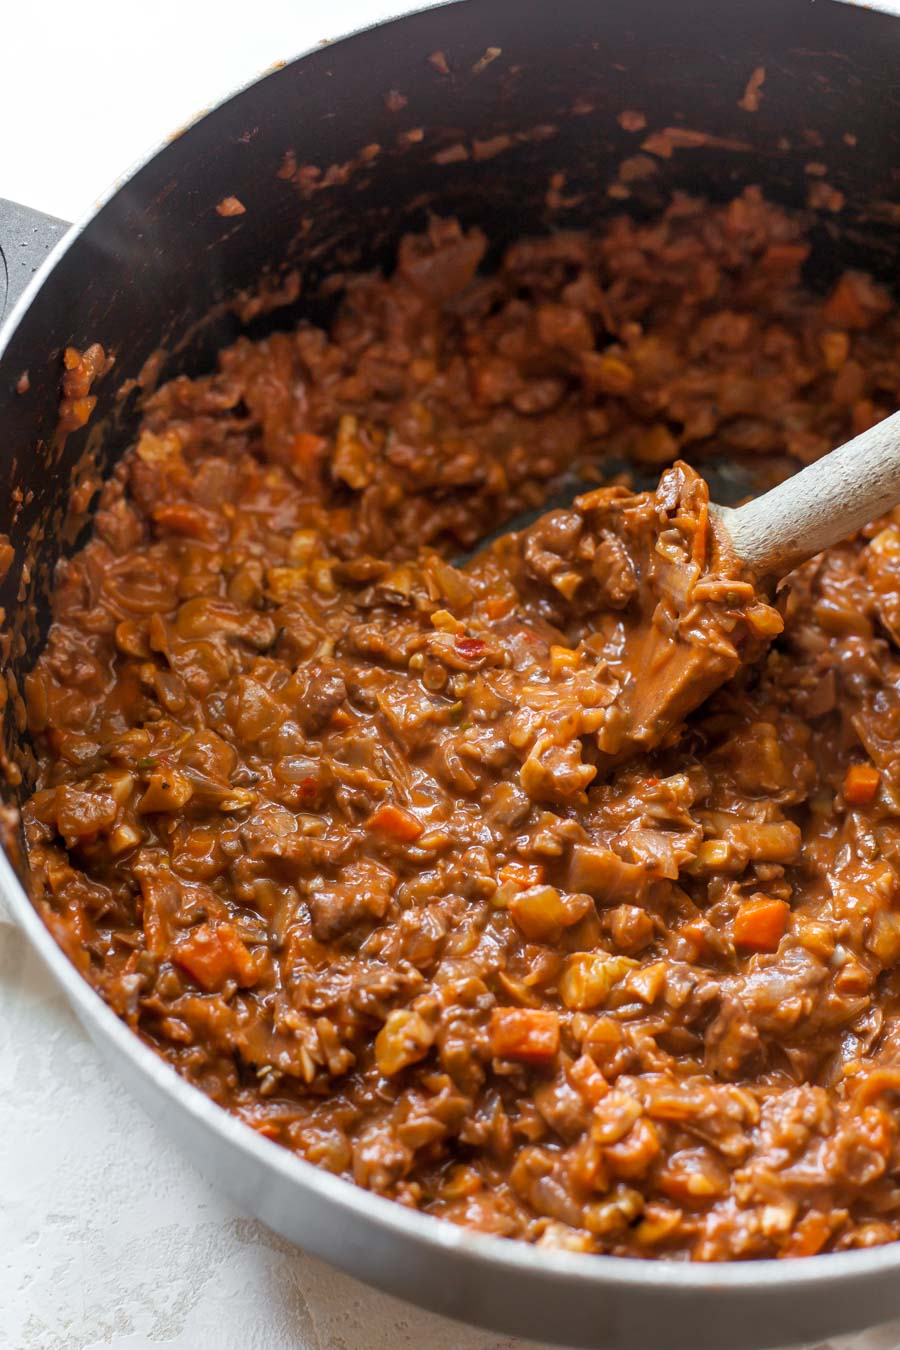 Mushroom and Walnut Bolognese Sauce